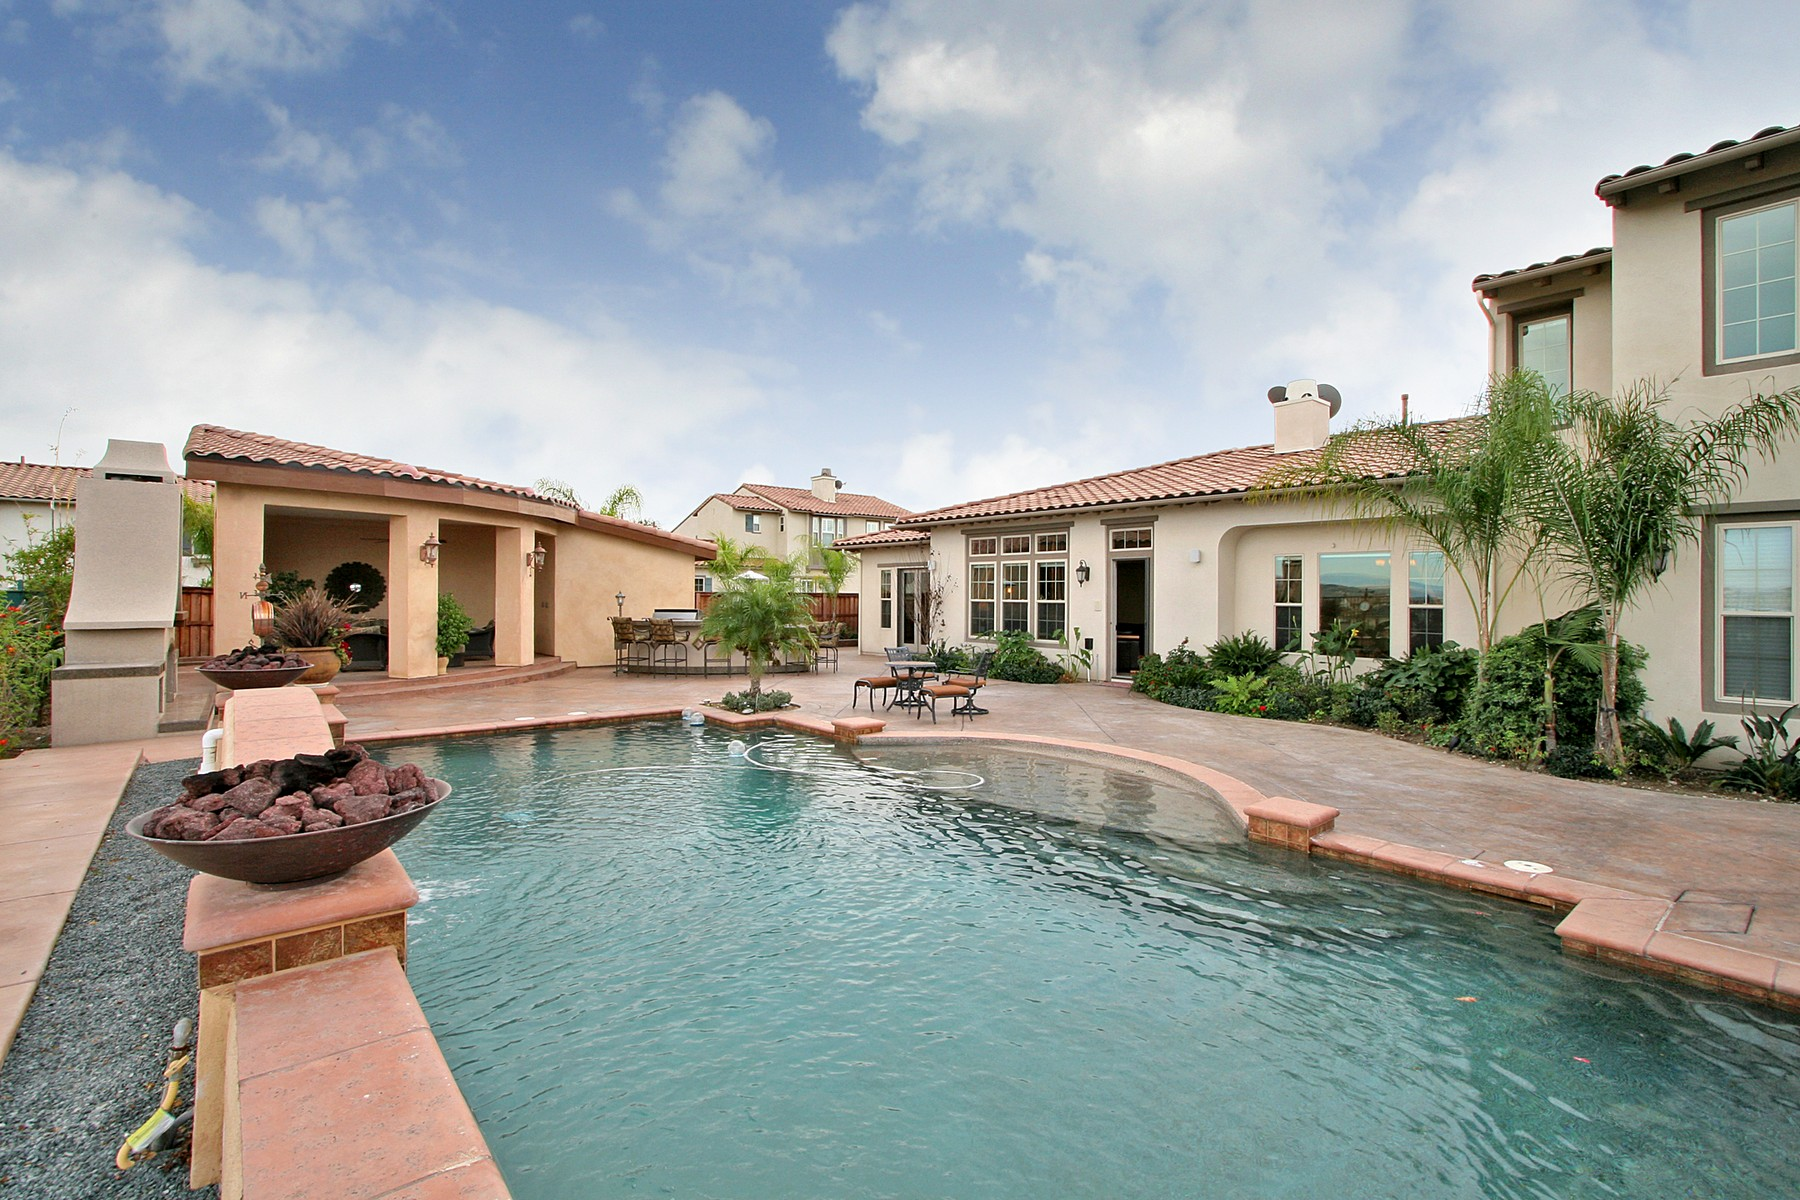 Additional photo for property listing at 14638 Old Creek Road  San Diego, California 92131 United States